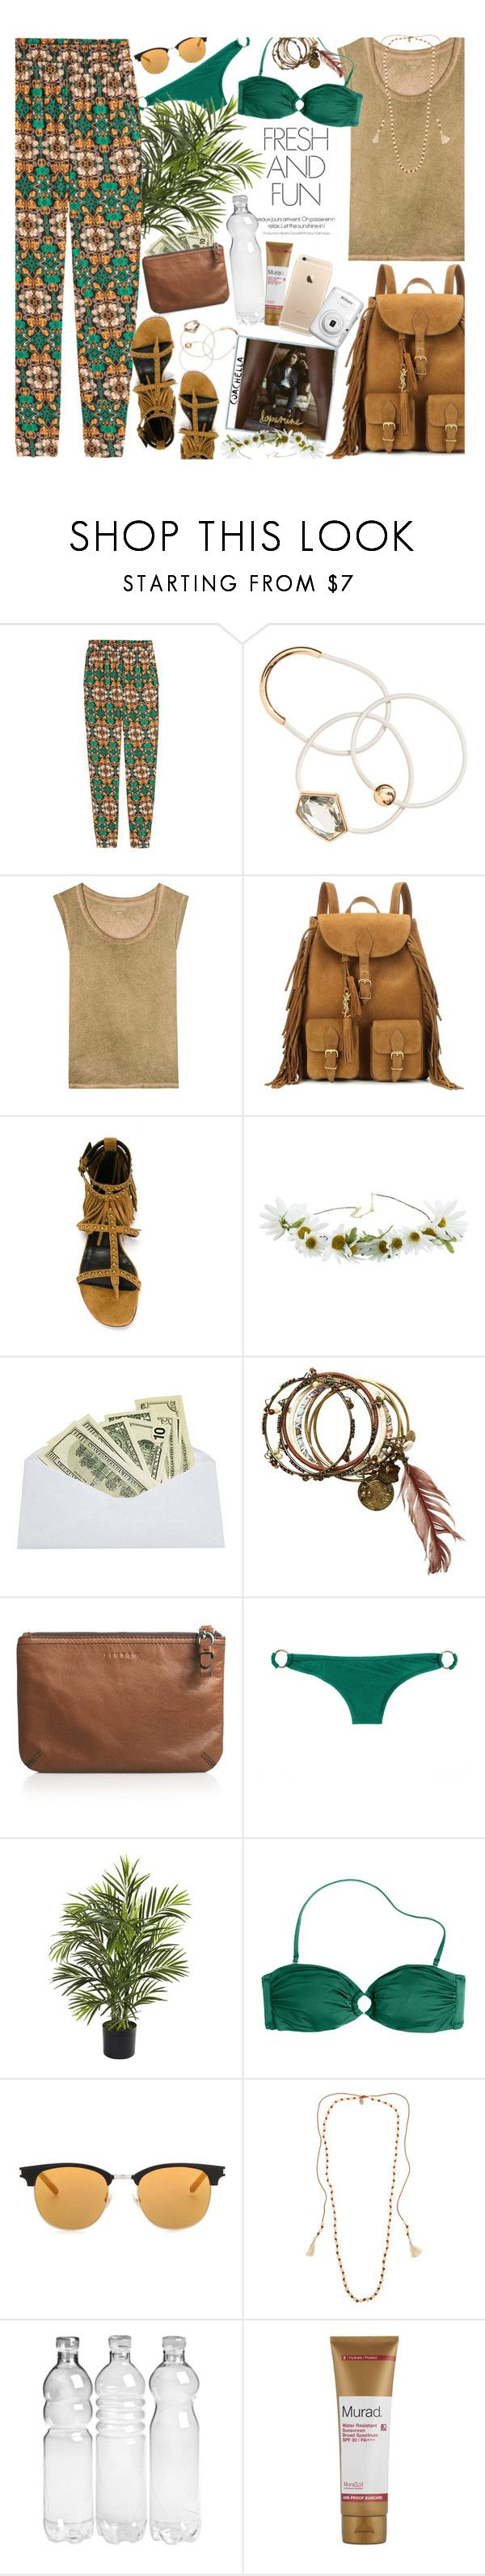 """""""Packed For Coachella: Weekend 1 Night 1"""" by hollowpoint-smile ❤ liked on Polyvore featuring Yves Saint Laurent, Cult Gaia, Jigsaw, J.Crew, Nearly Natural, Chan Luu, Murad and Nikon"""